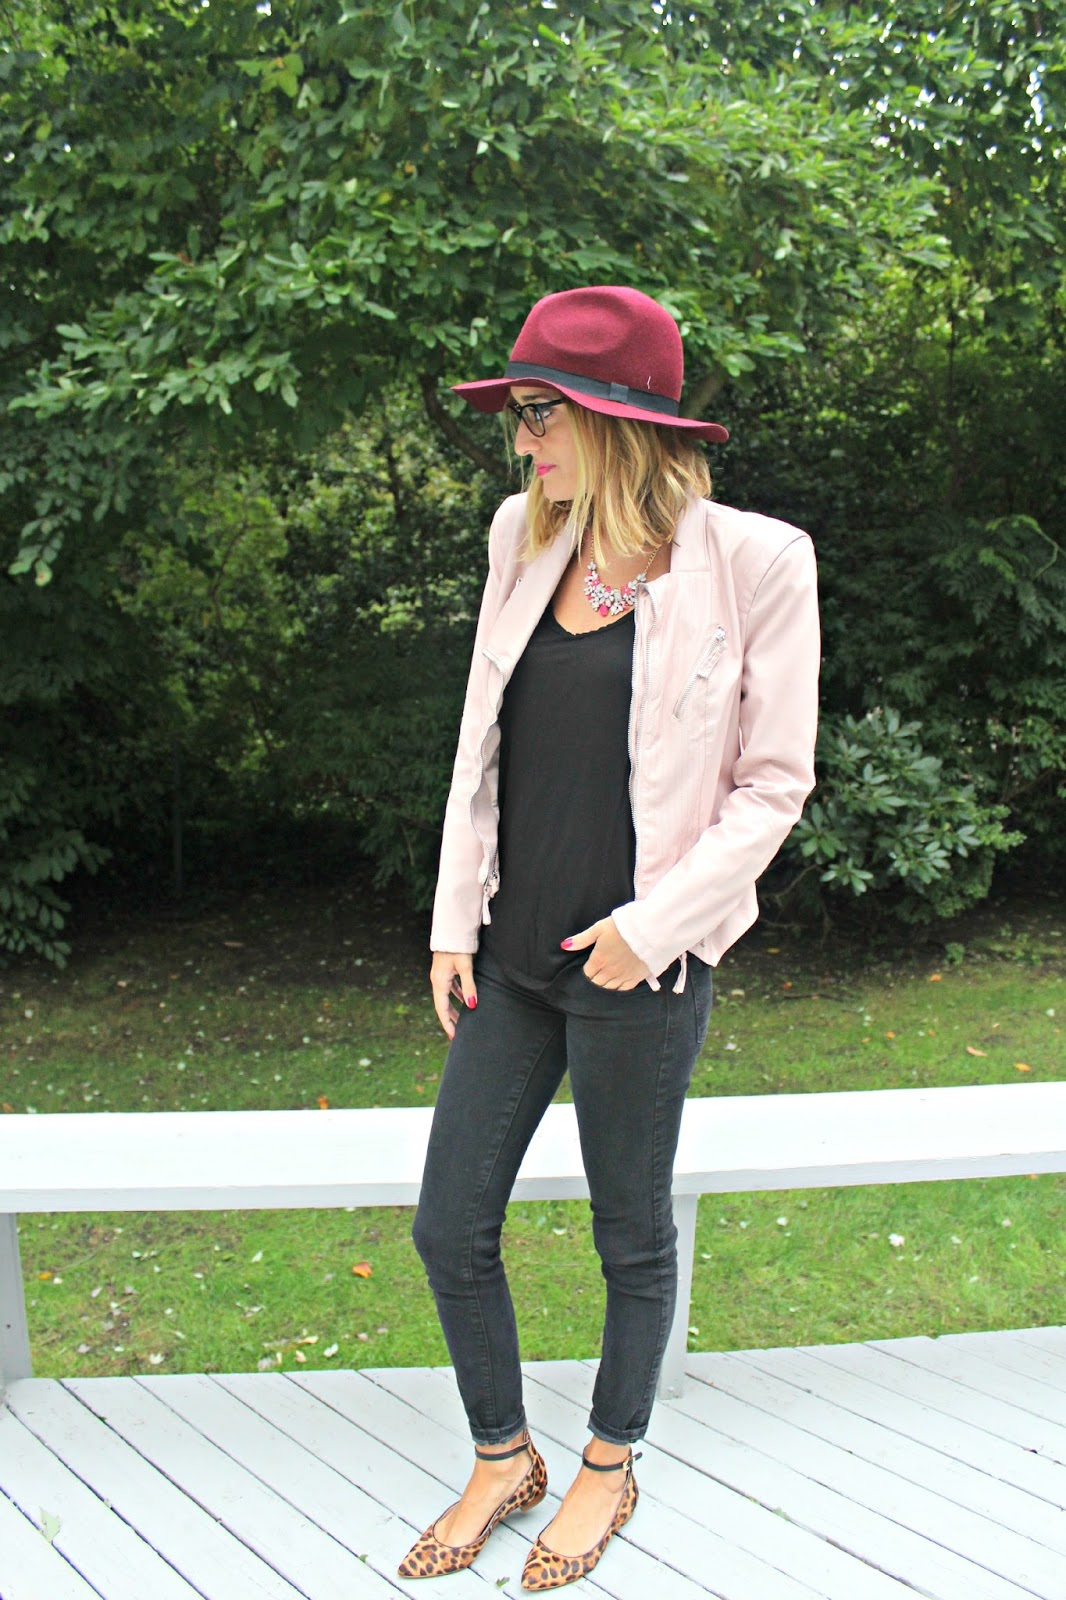 black outfit with pops of pink